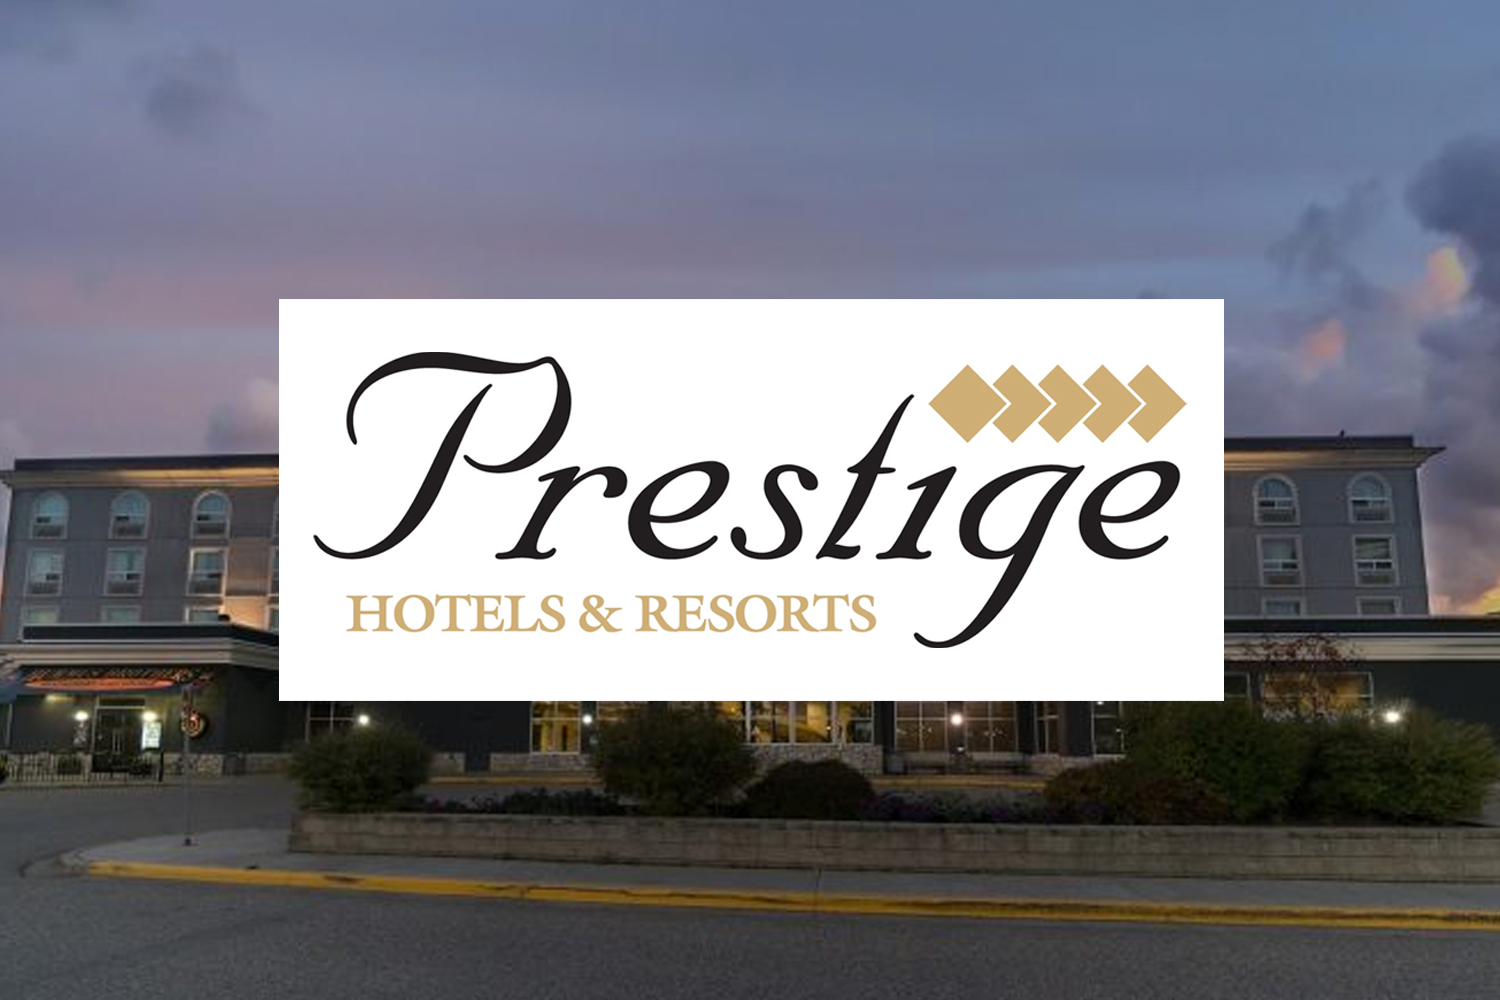 Prestige Treasure Cove Hotel